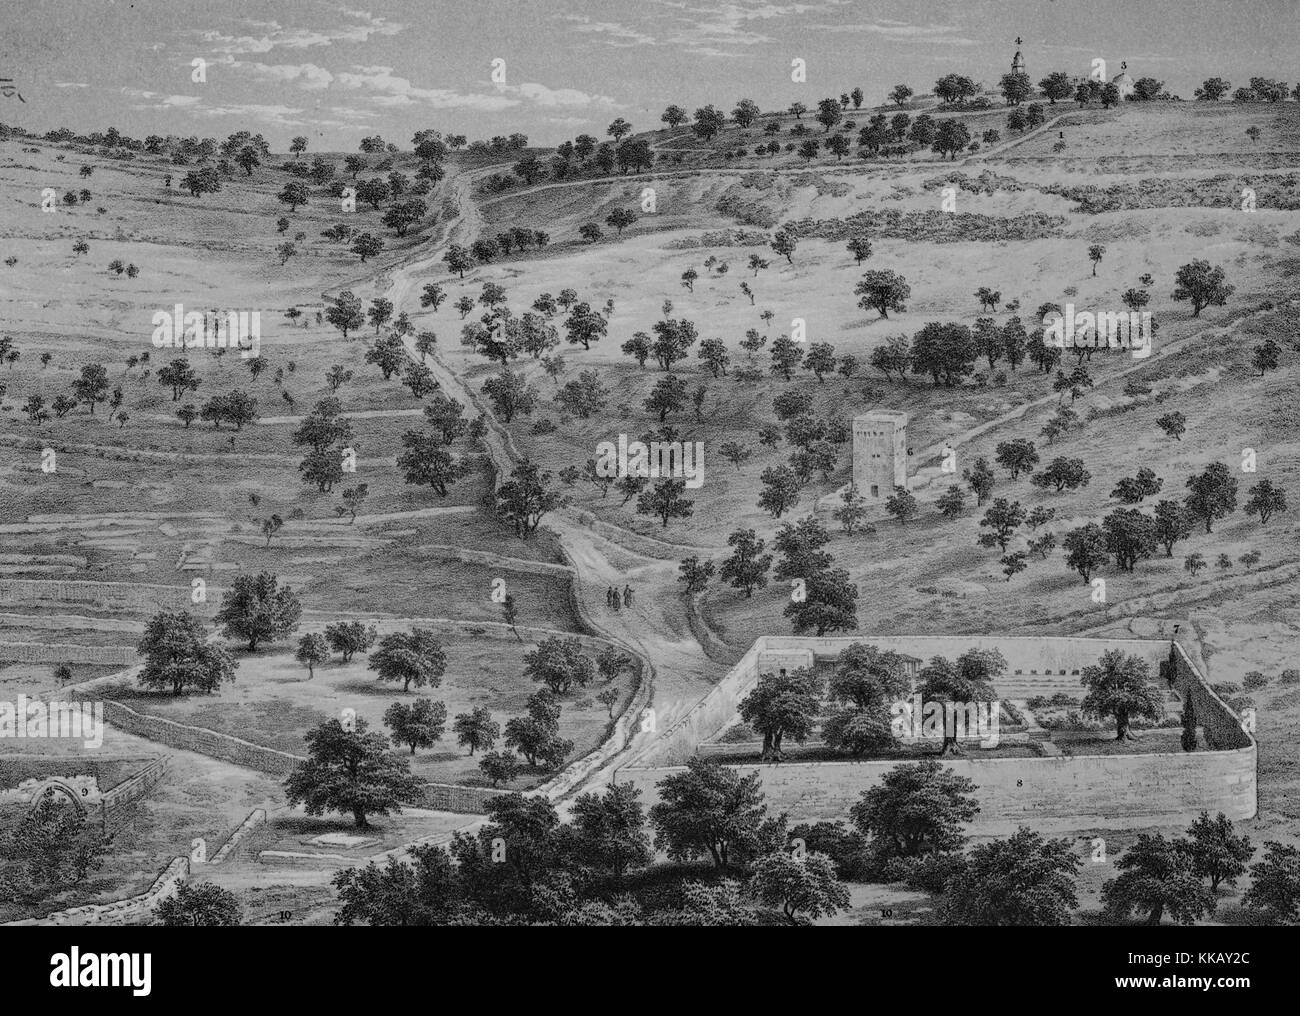 Lithograph depicting a panorama with hills, trees, a road, and some stone structures, titled 'Mount of Olives - Stock Image